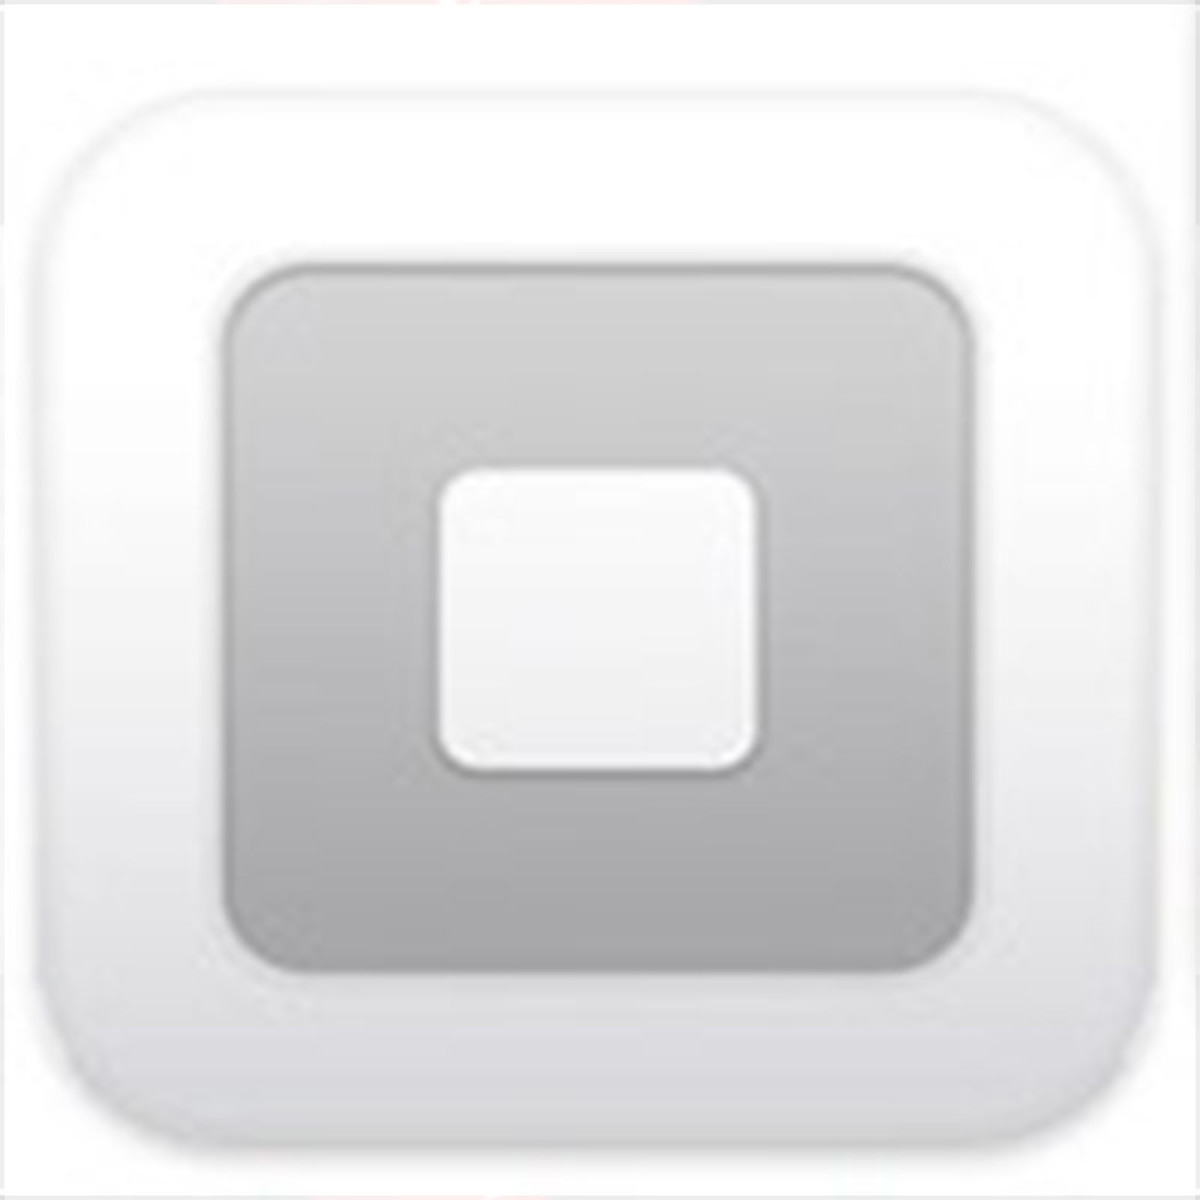 Square is an App that allows you you to accept credit card payements anywhere from your mobile device without having a credit card merchant acount. You'll have to plug in free square credit card reader in to the headphone jack or type credit card #